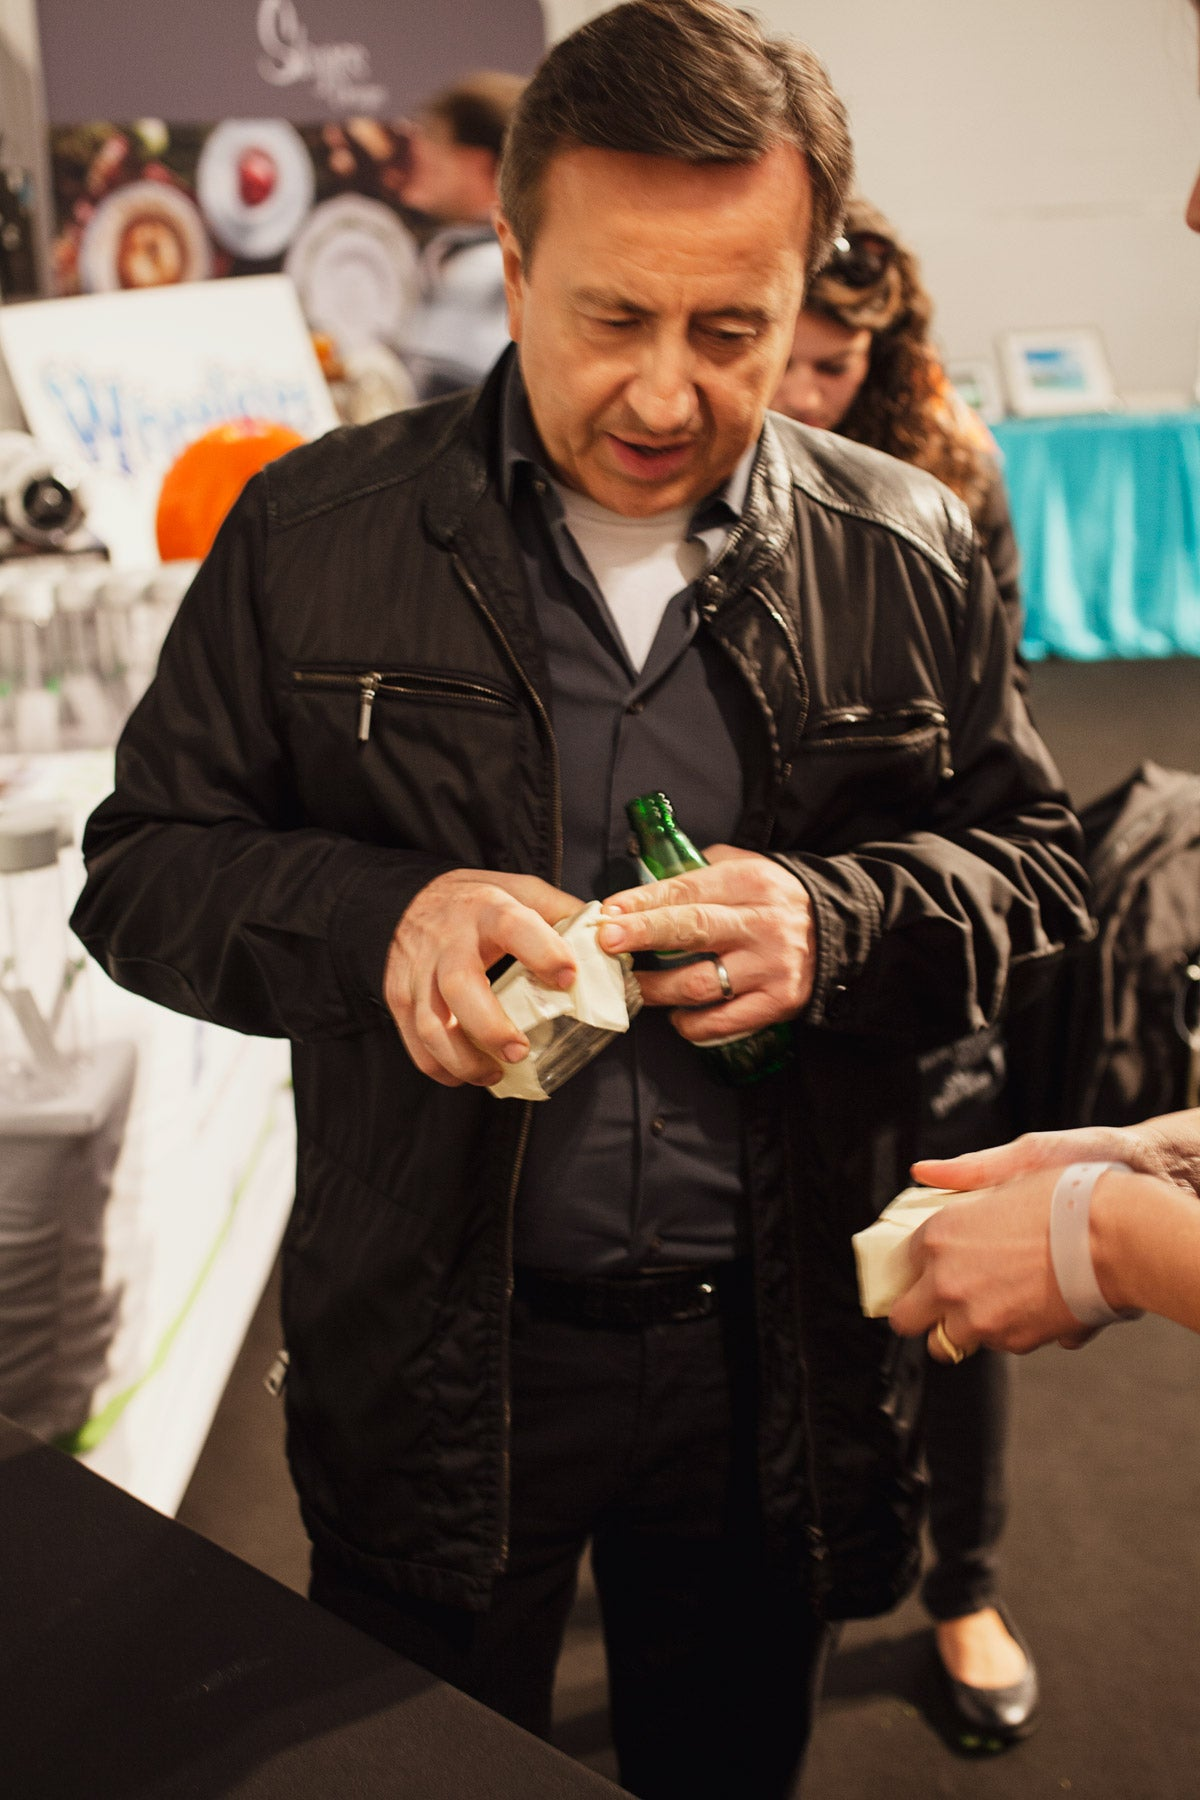 Daniel Boulud with Abeego at New York Food and Wine Festival